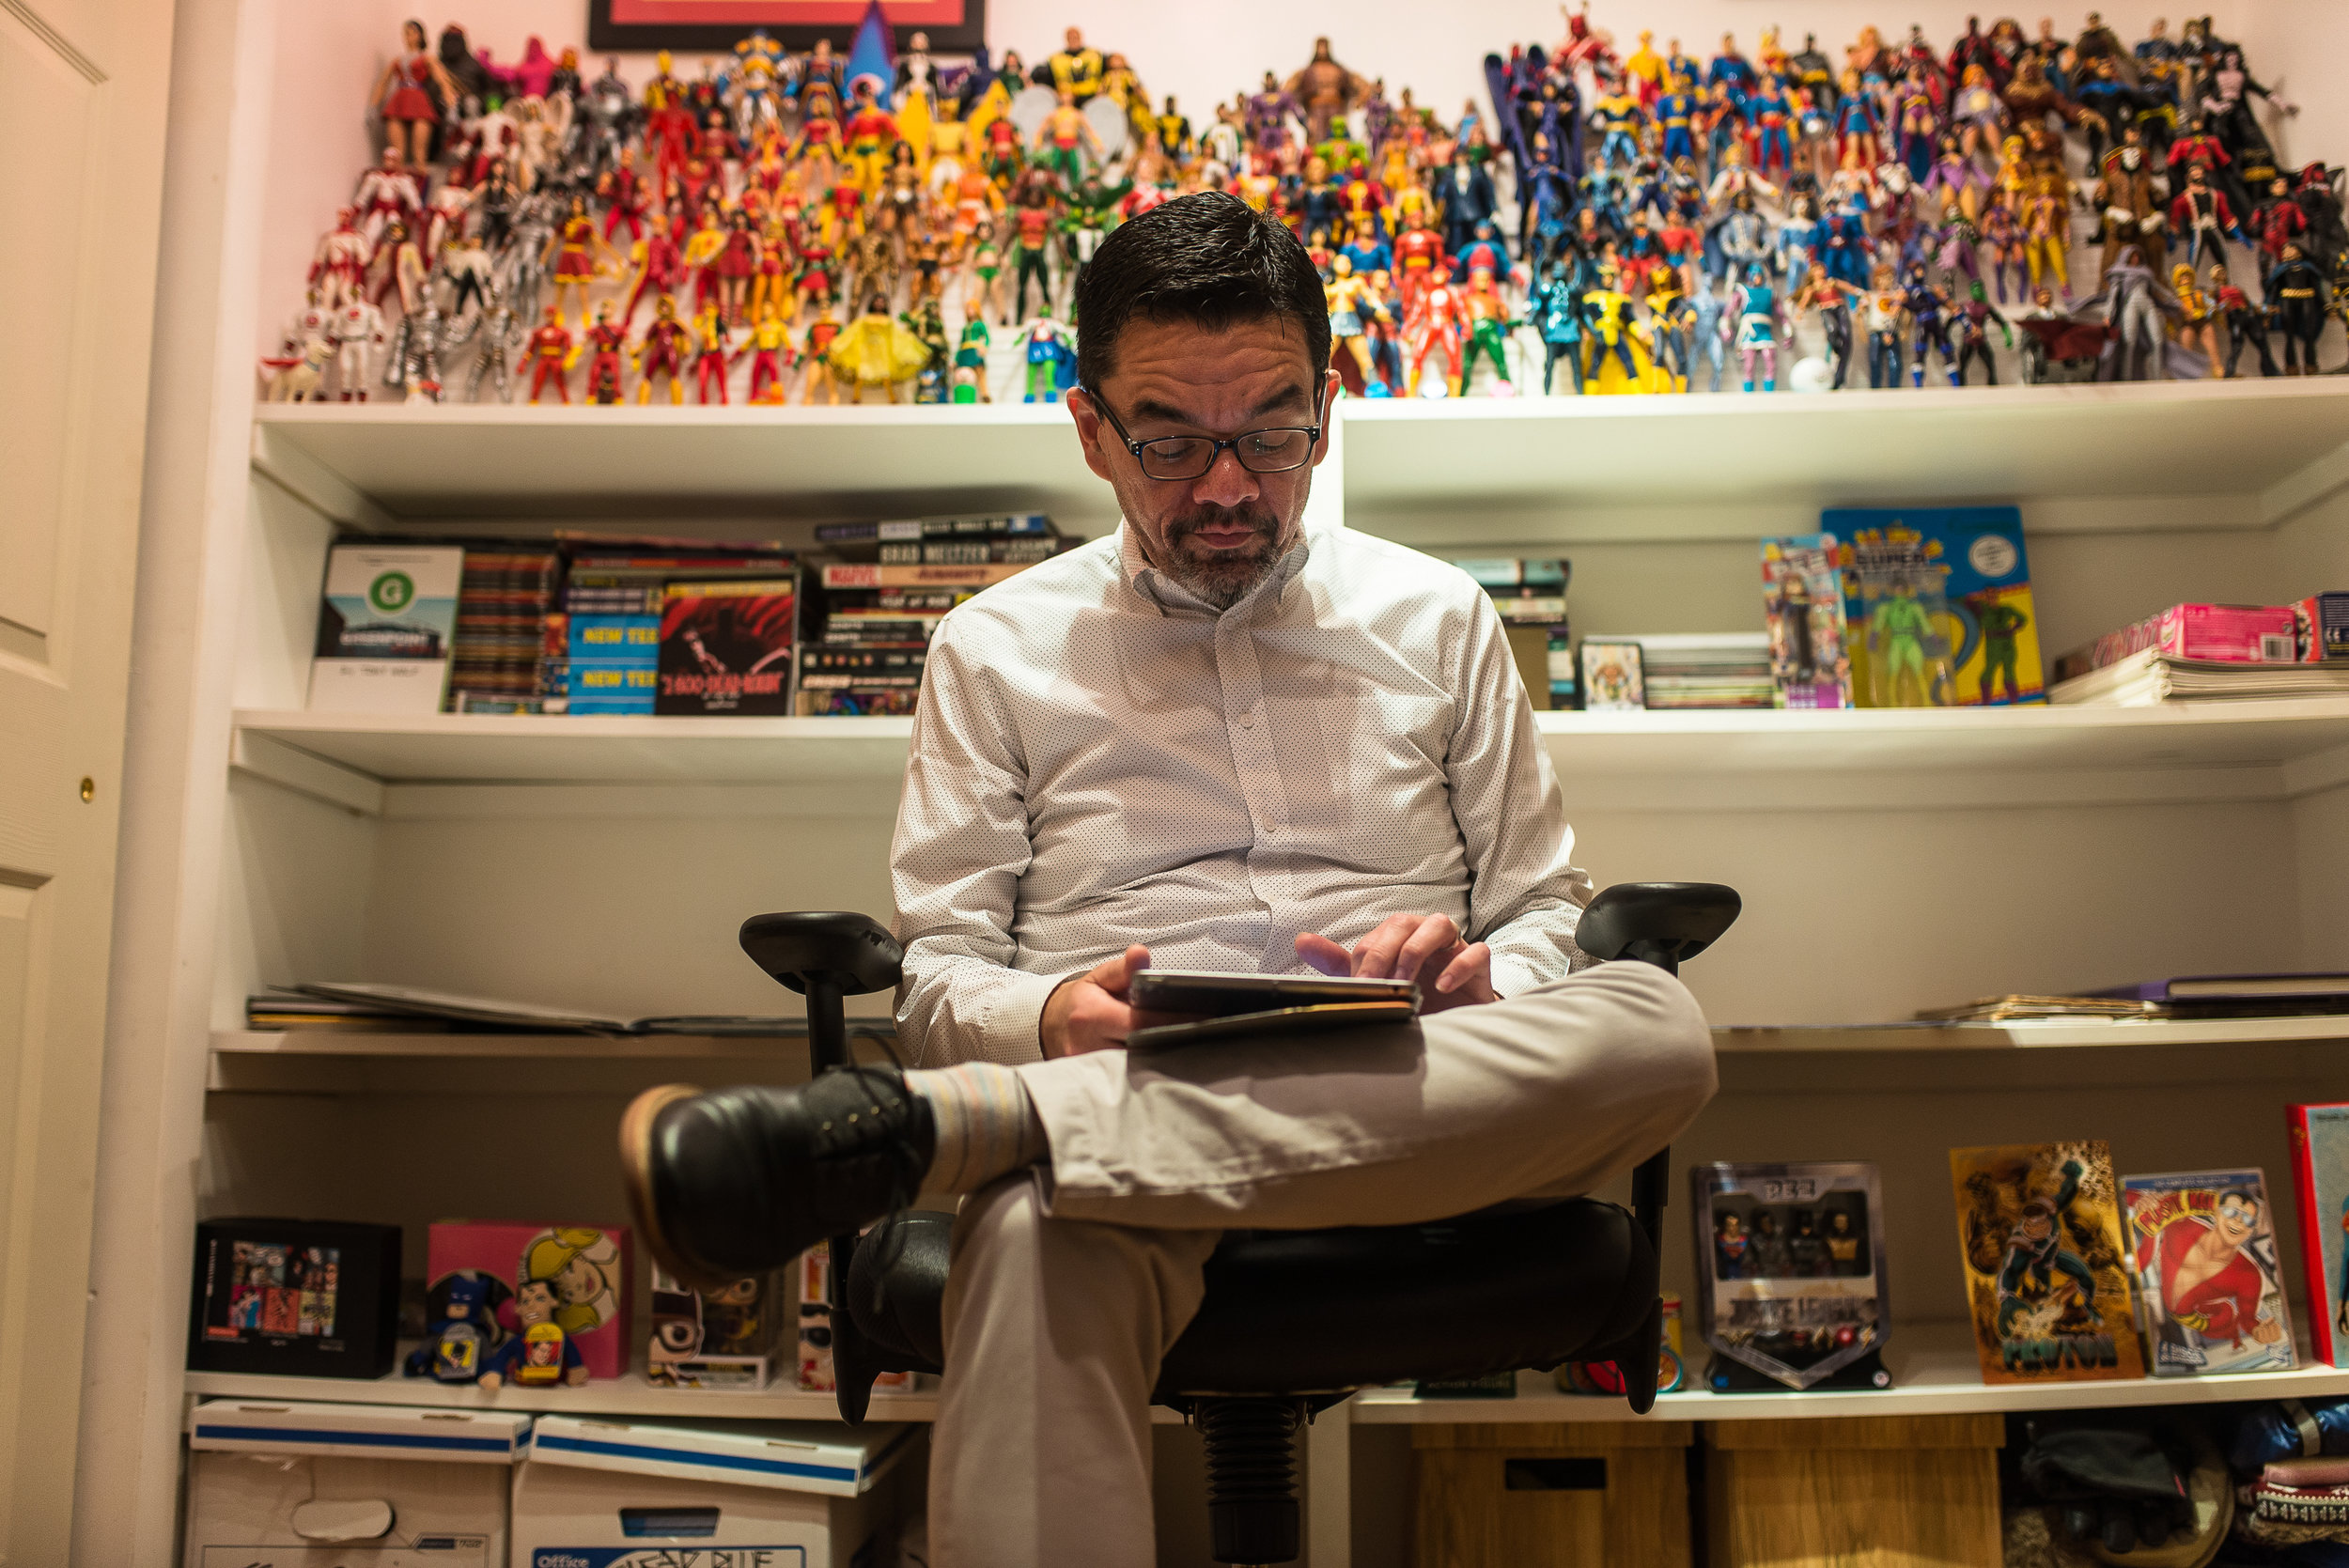 George Gustines reads the latest edition of comics on his tablet in his home office on the Upper West Side.